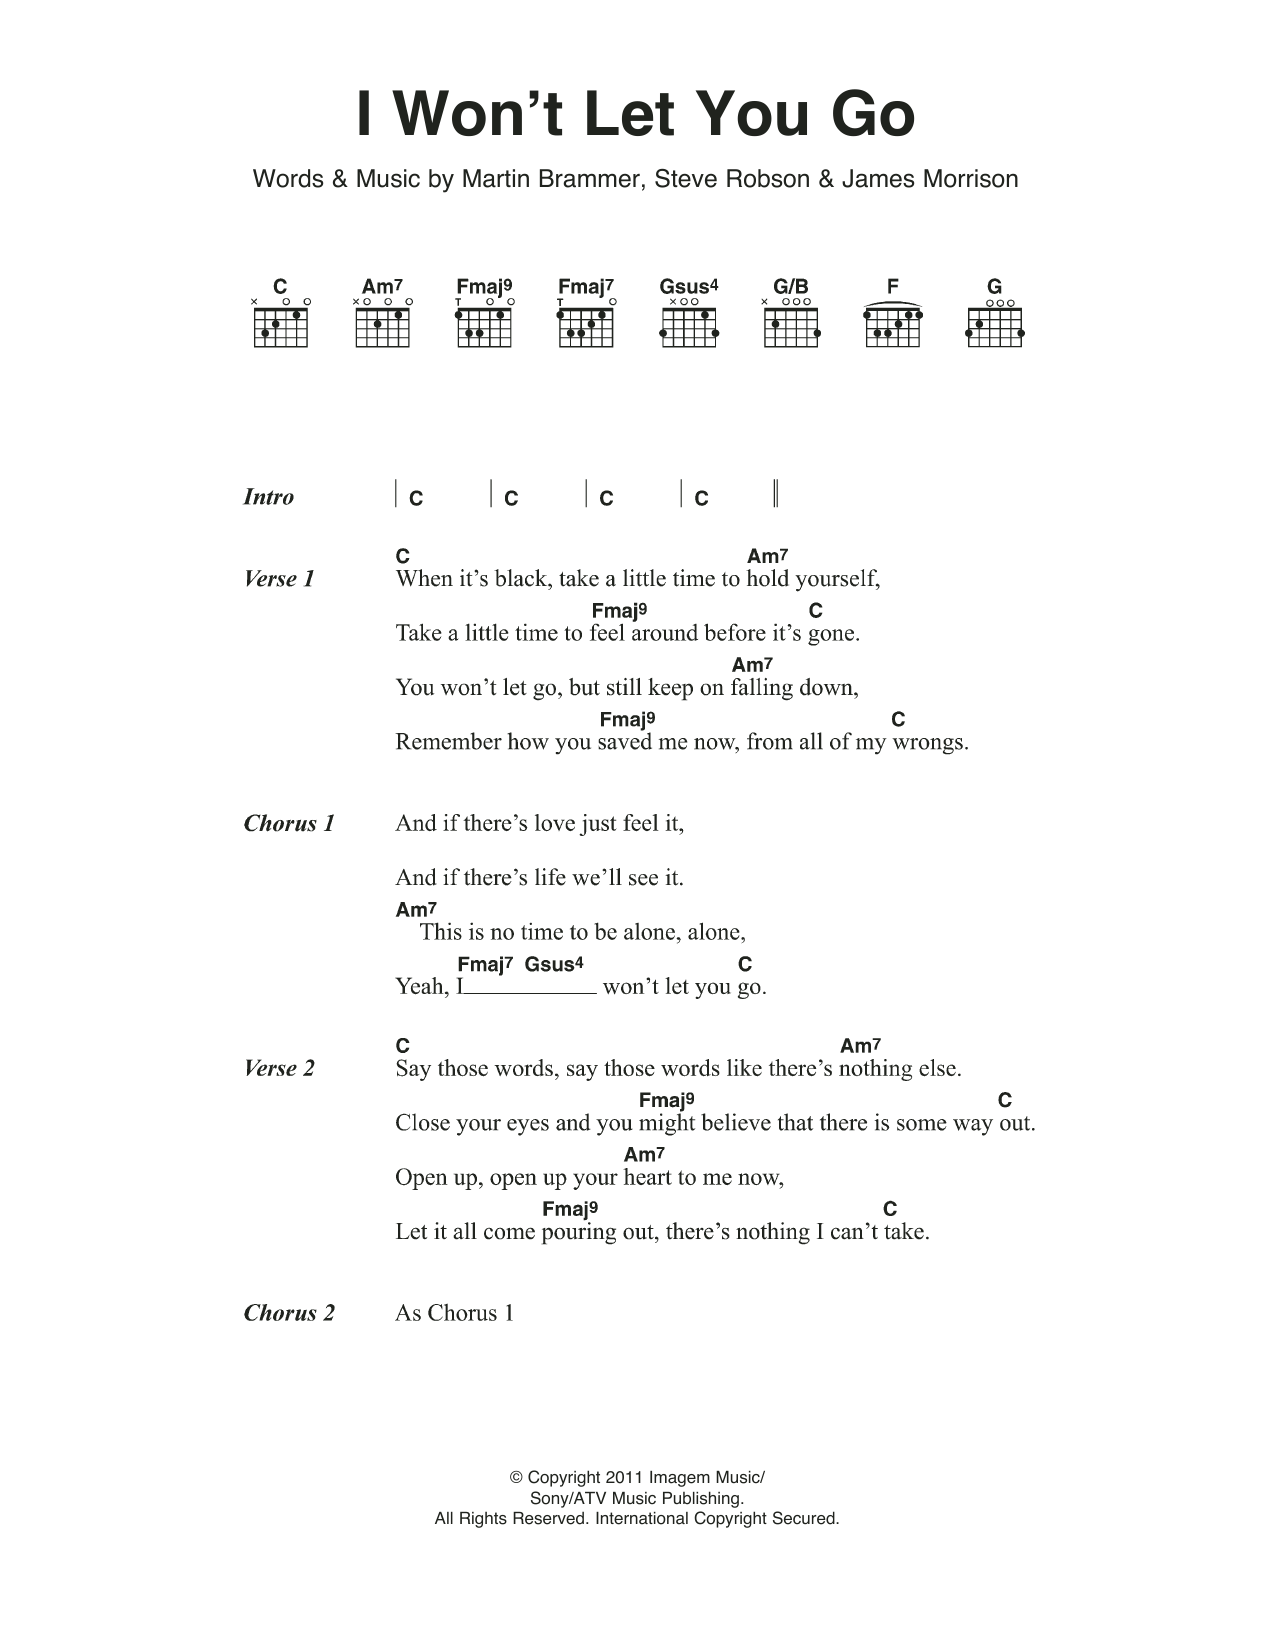 I Wont Let You Go Sheet Music James Morrison Lyrics Chords